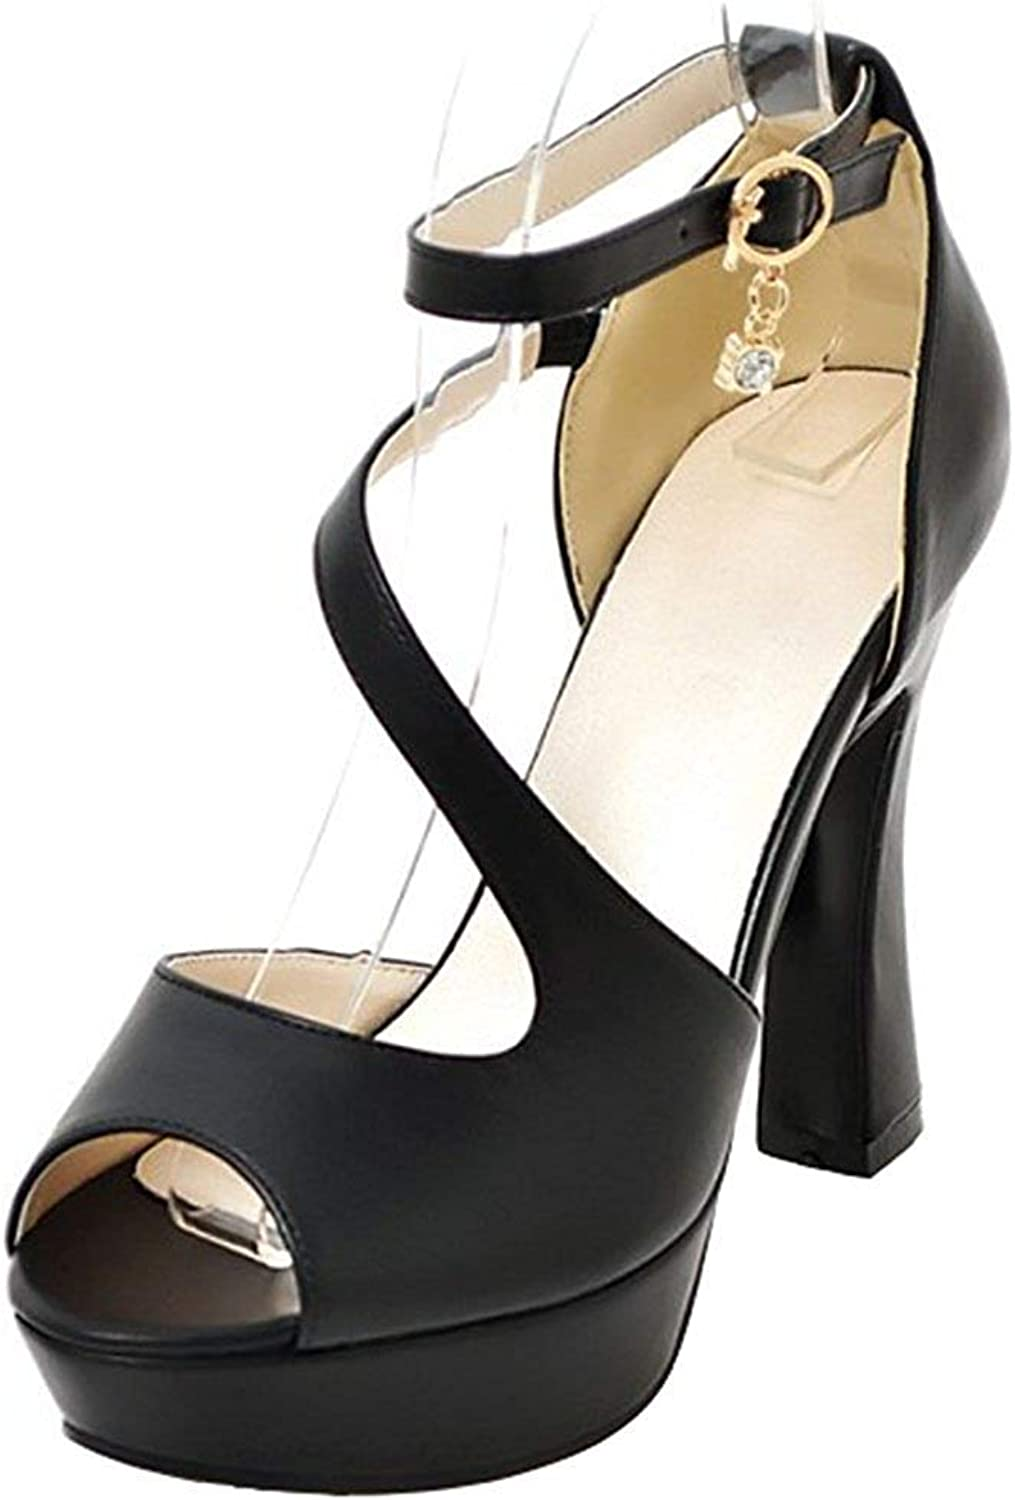 Wallhewb Women's Dressy Ankle Strap Sandals - Peep Toe Pendant Strappy - Buckle Platform Chunky High Heels shoes Leather Comfortable Sweet Breathable Dexterous White 8 M US Strap Sandals